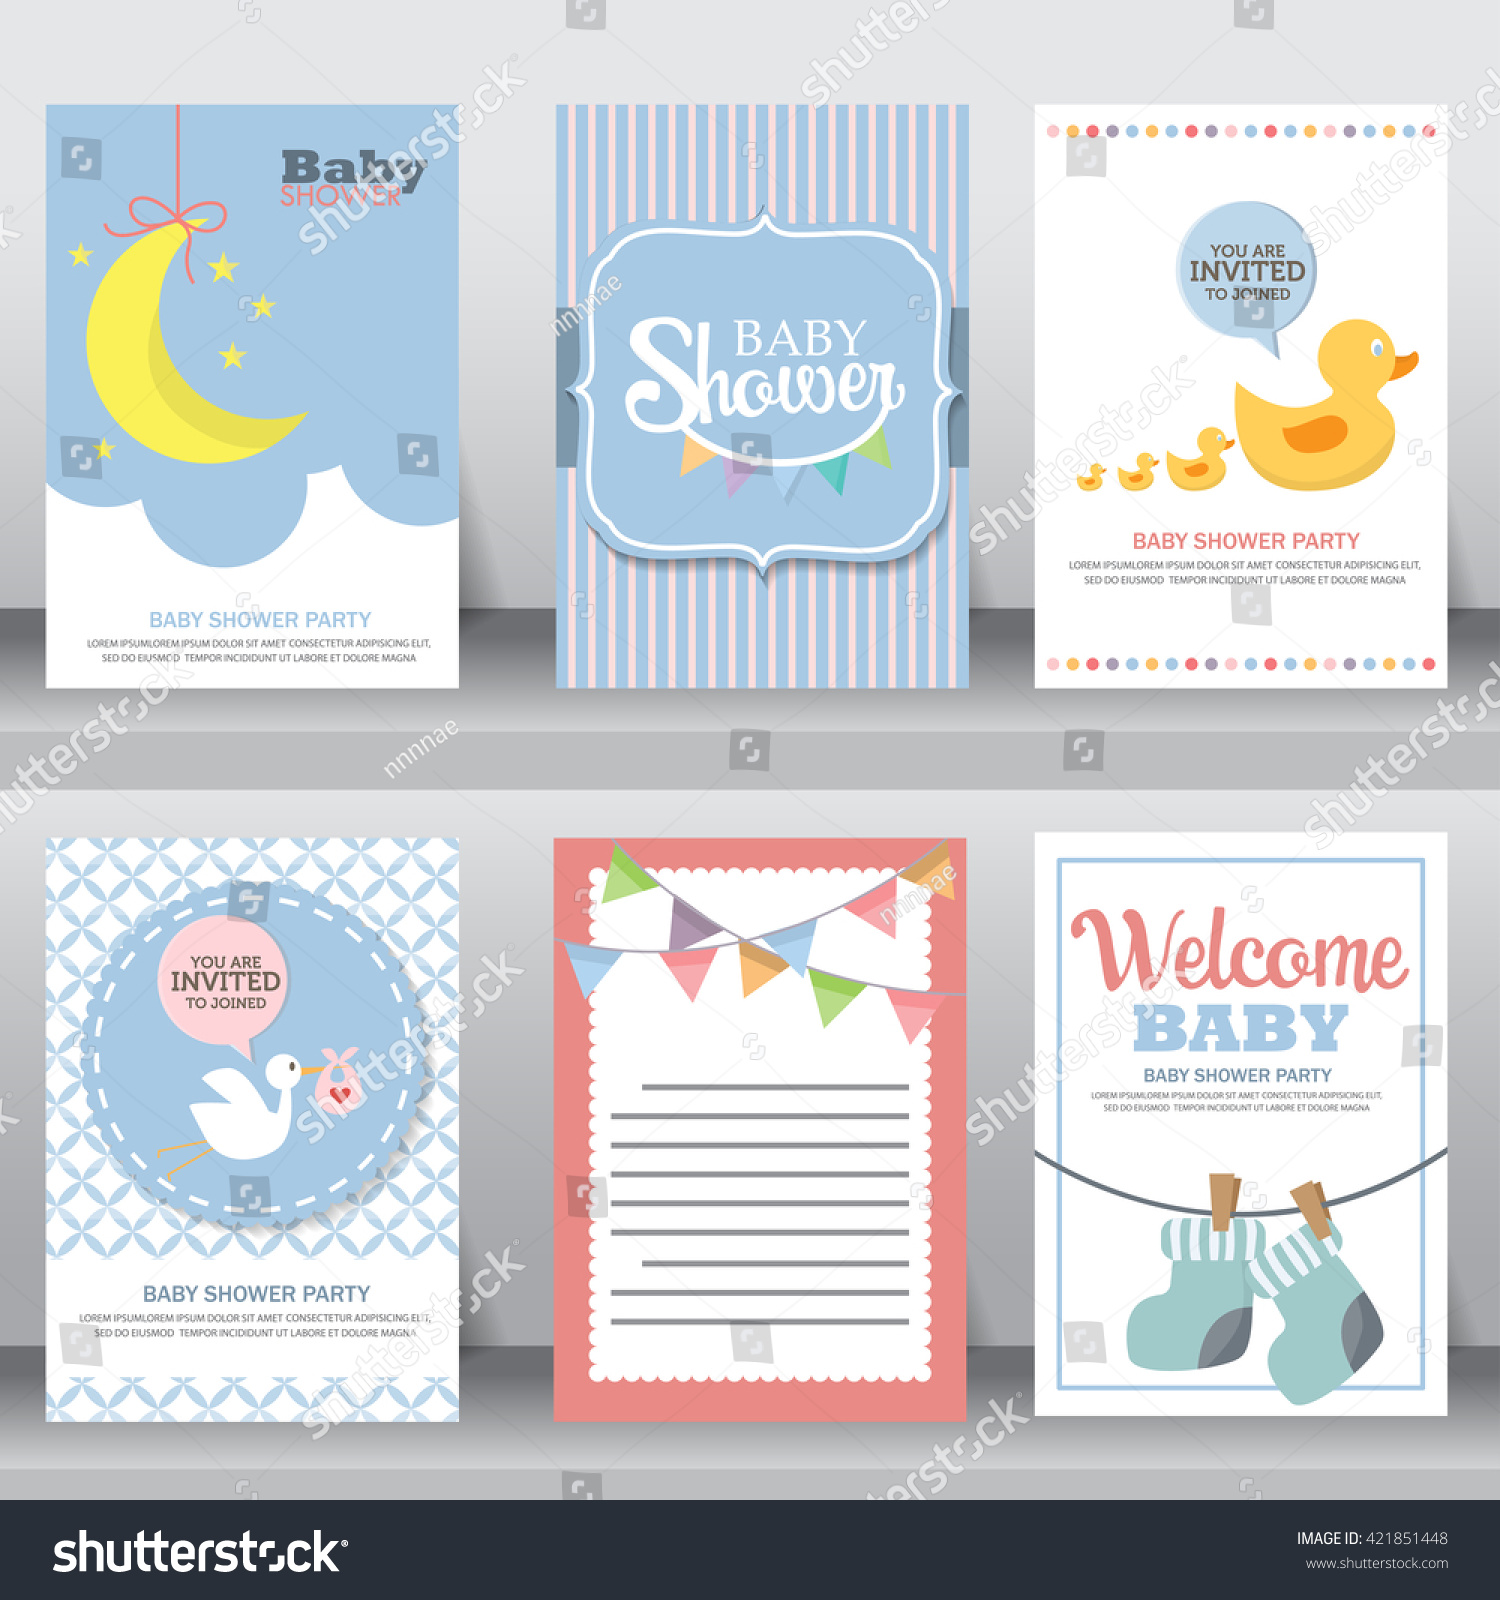 happy birthday holiday baby shower celebration stock vector 421851448 shutterstock. Black Bedroom Furniture Sets. Home Design Ideas